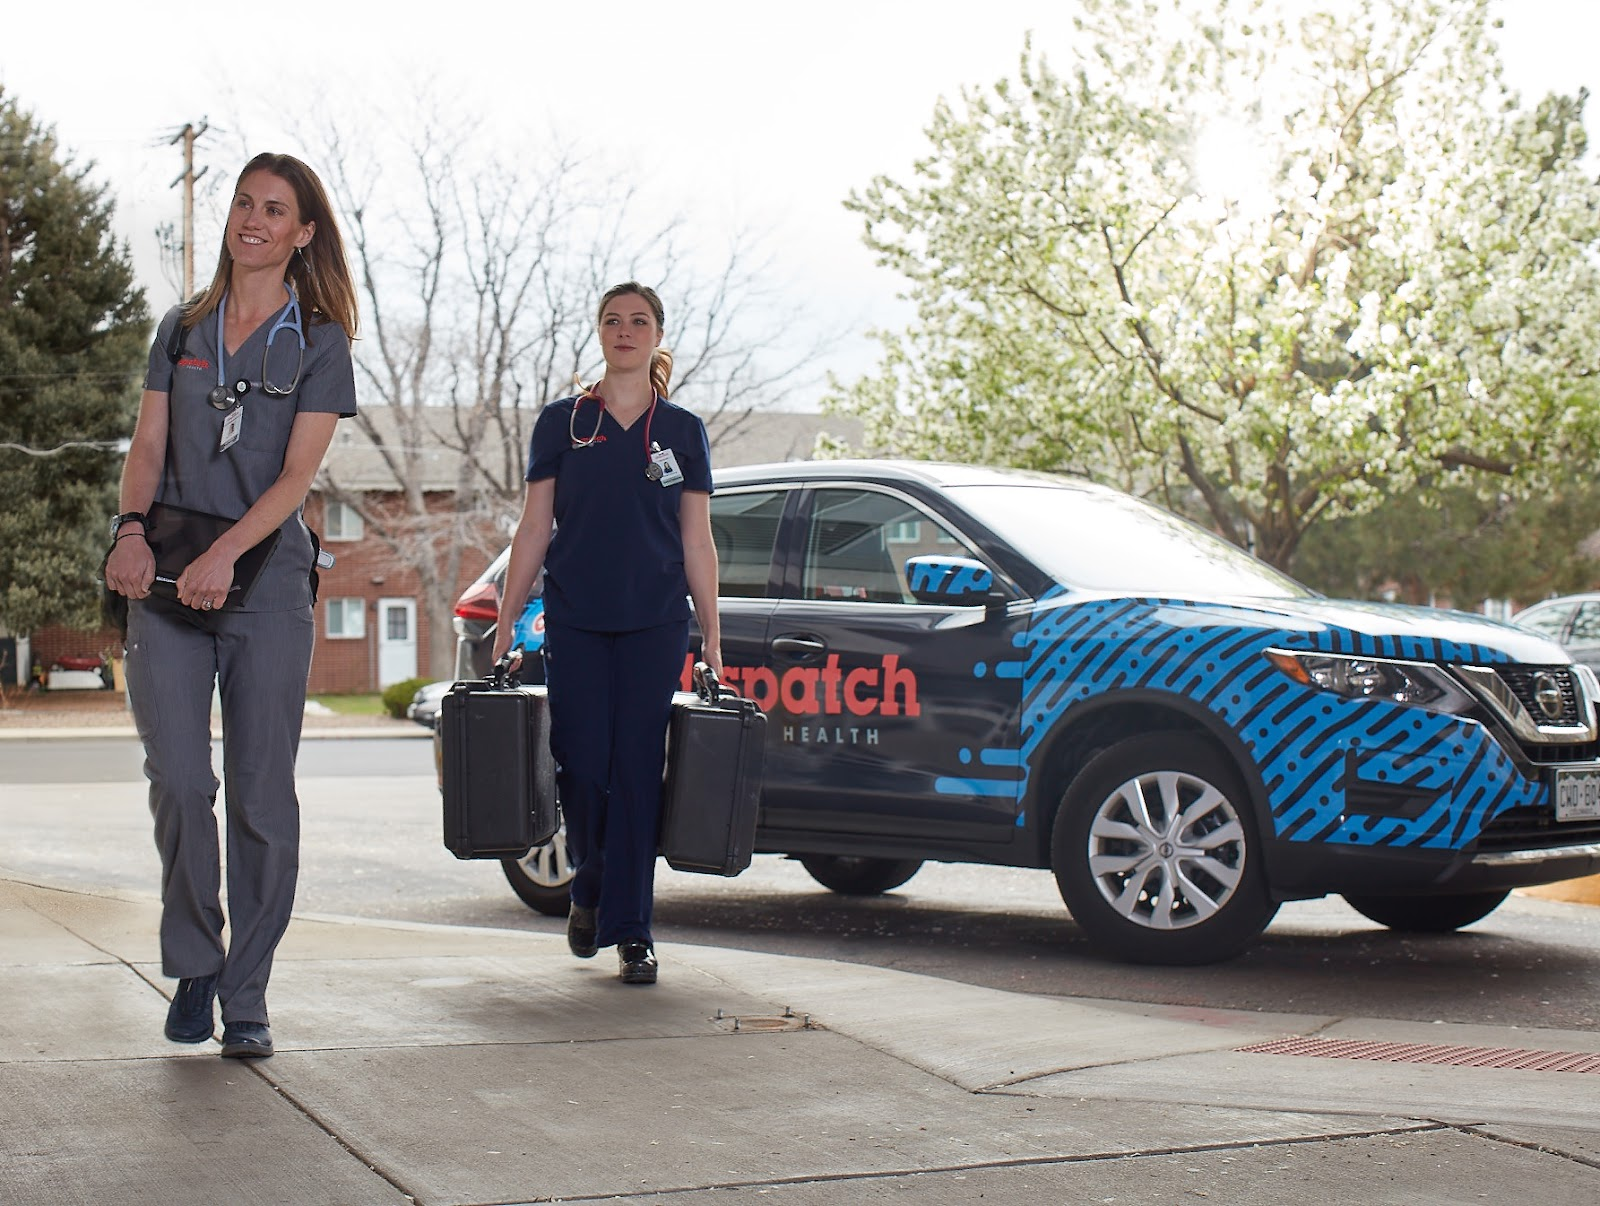 DispatchHealth workers on call